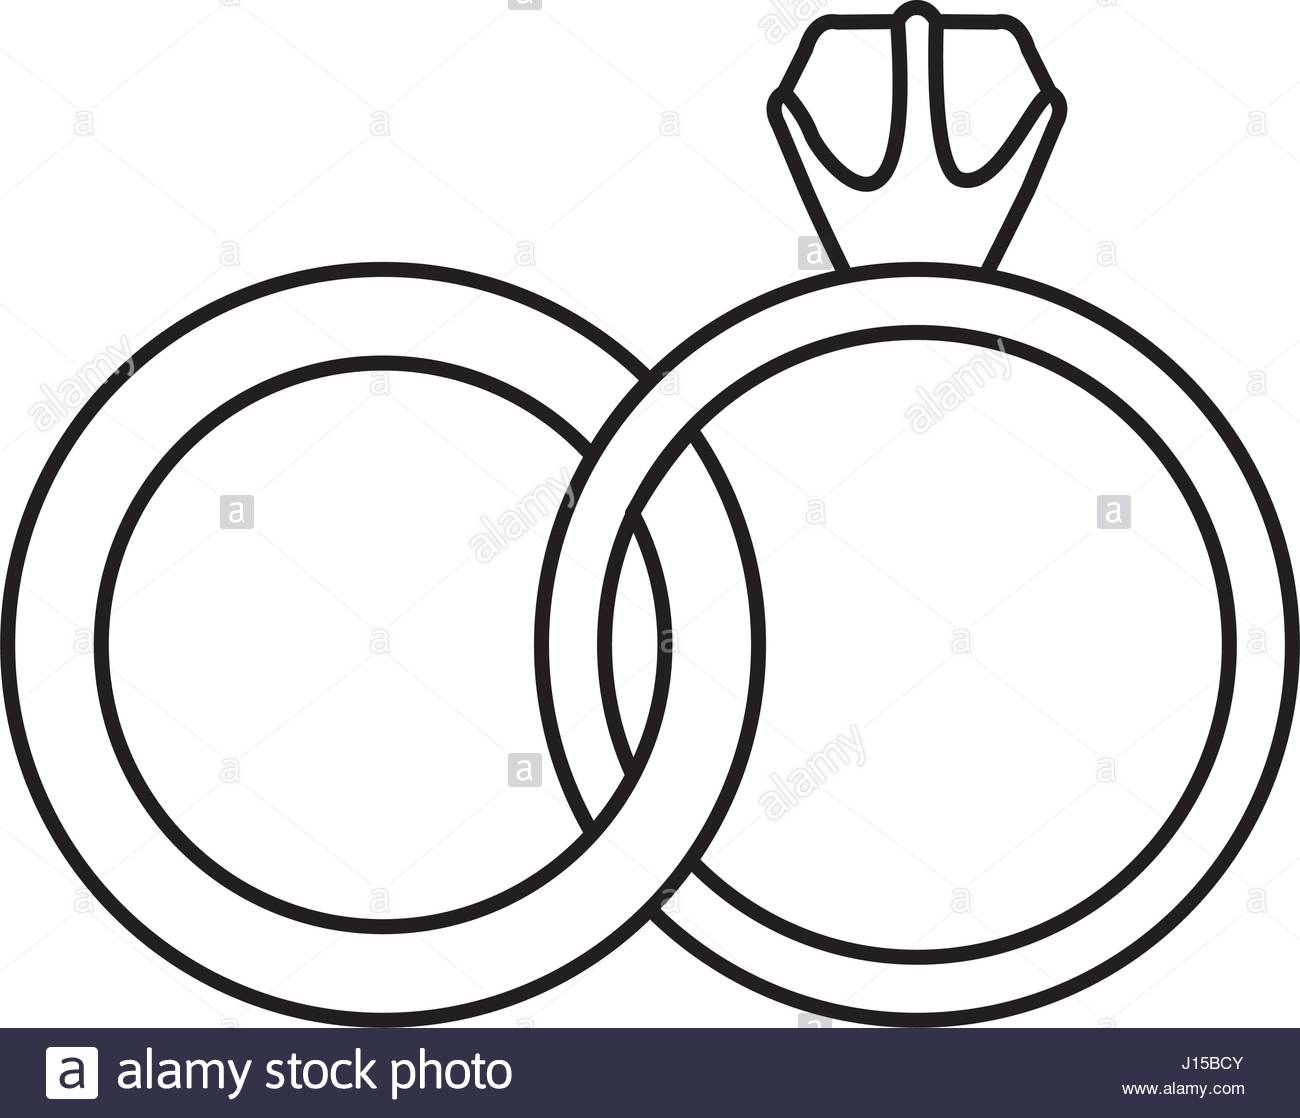 1300x1118 Black Silhouette Of Wedding Rings Stock Vector Art Amp Illustration